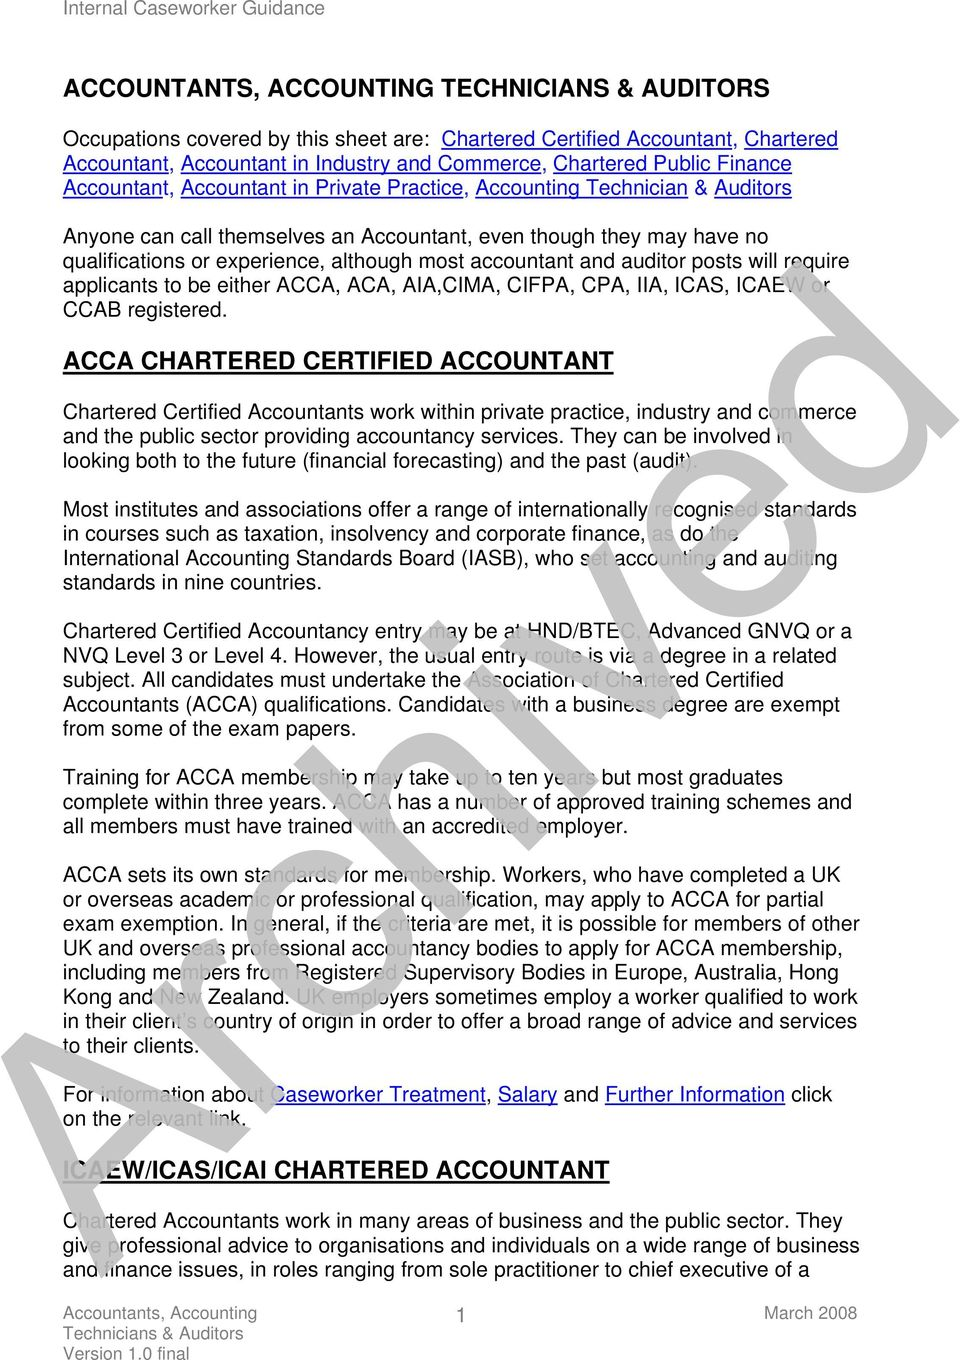 accountant and auditor posts will require applicants to be either ACCA, ACA, AIA,CIMA, CIFPA, CPA, IIA, ICAS, ICAEW or CCAB registered.